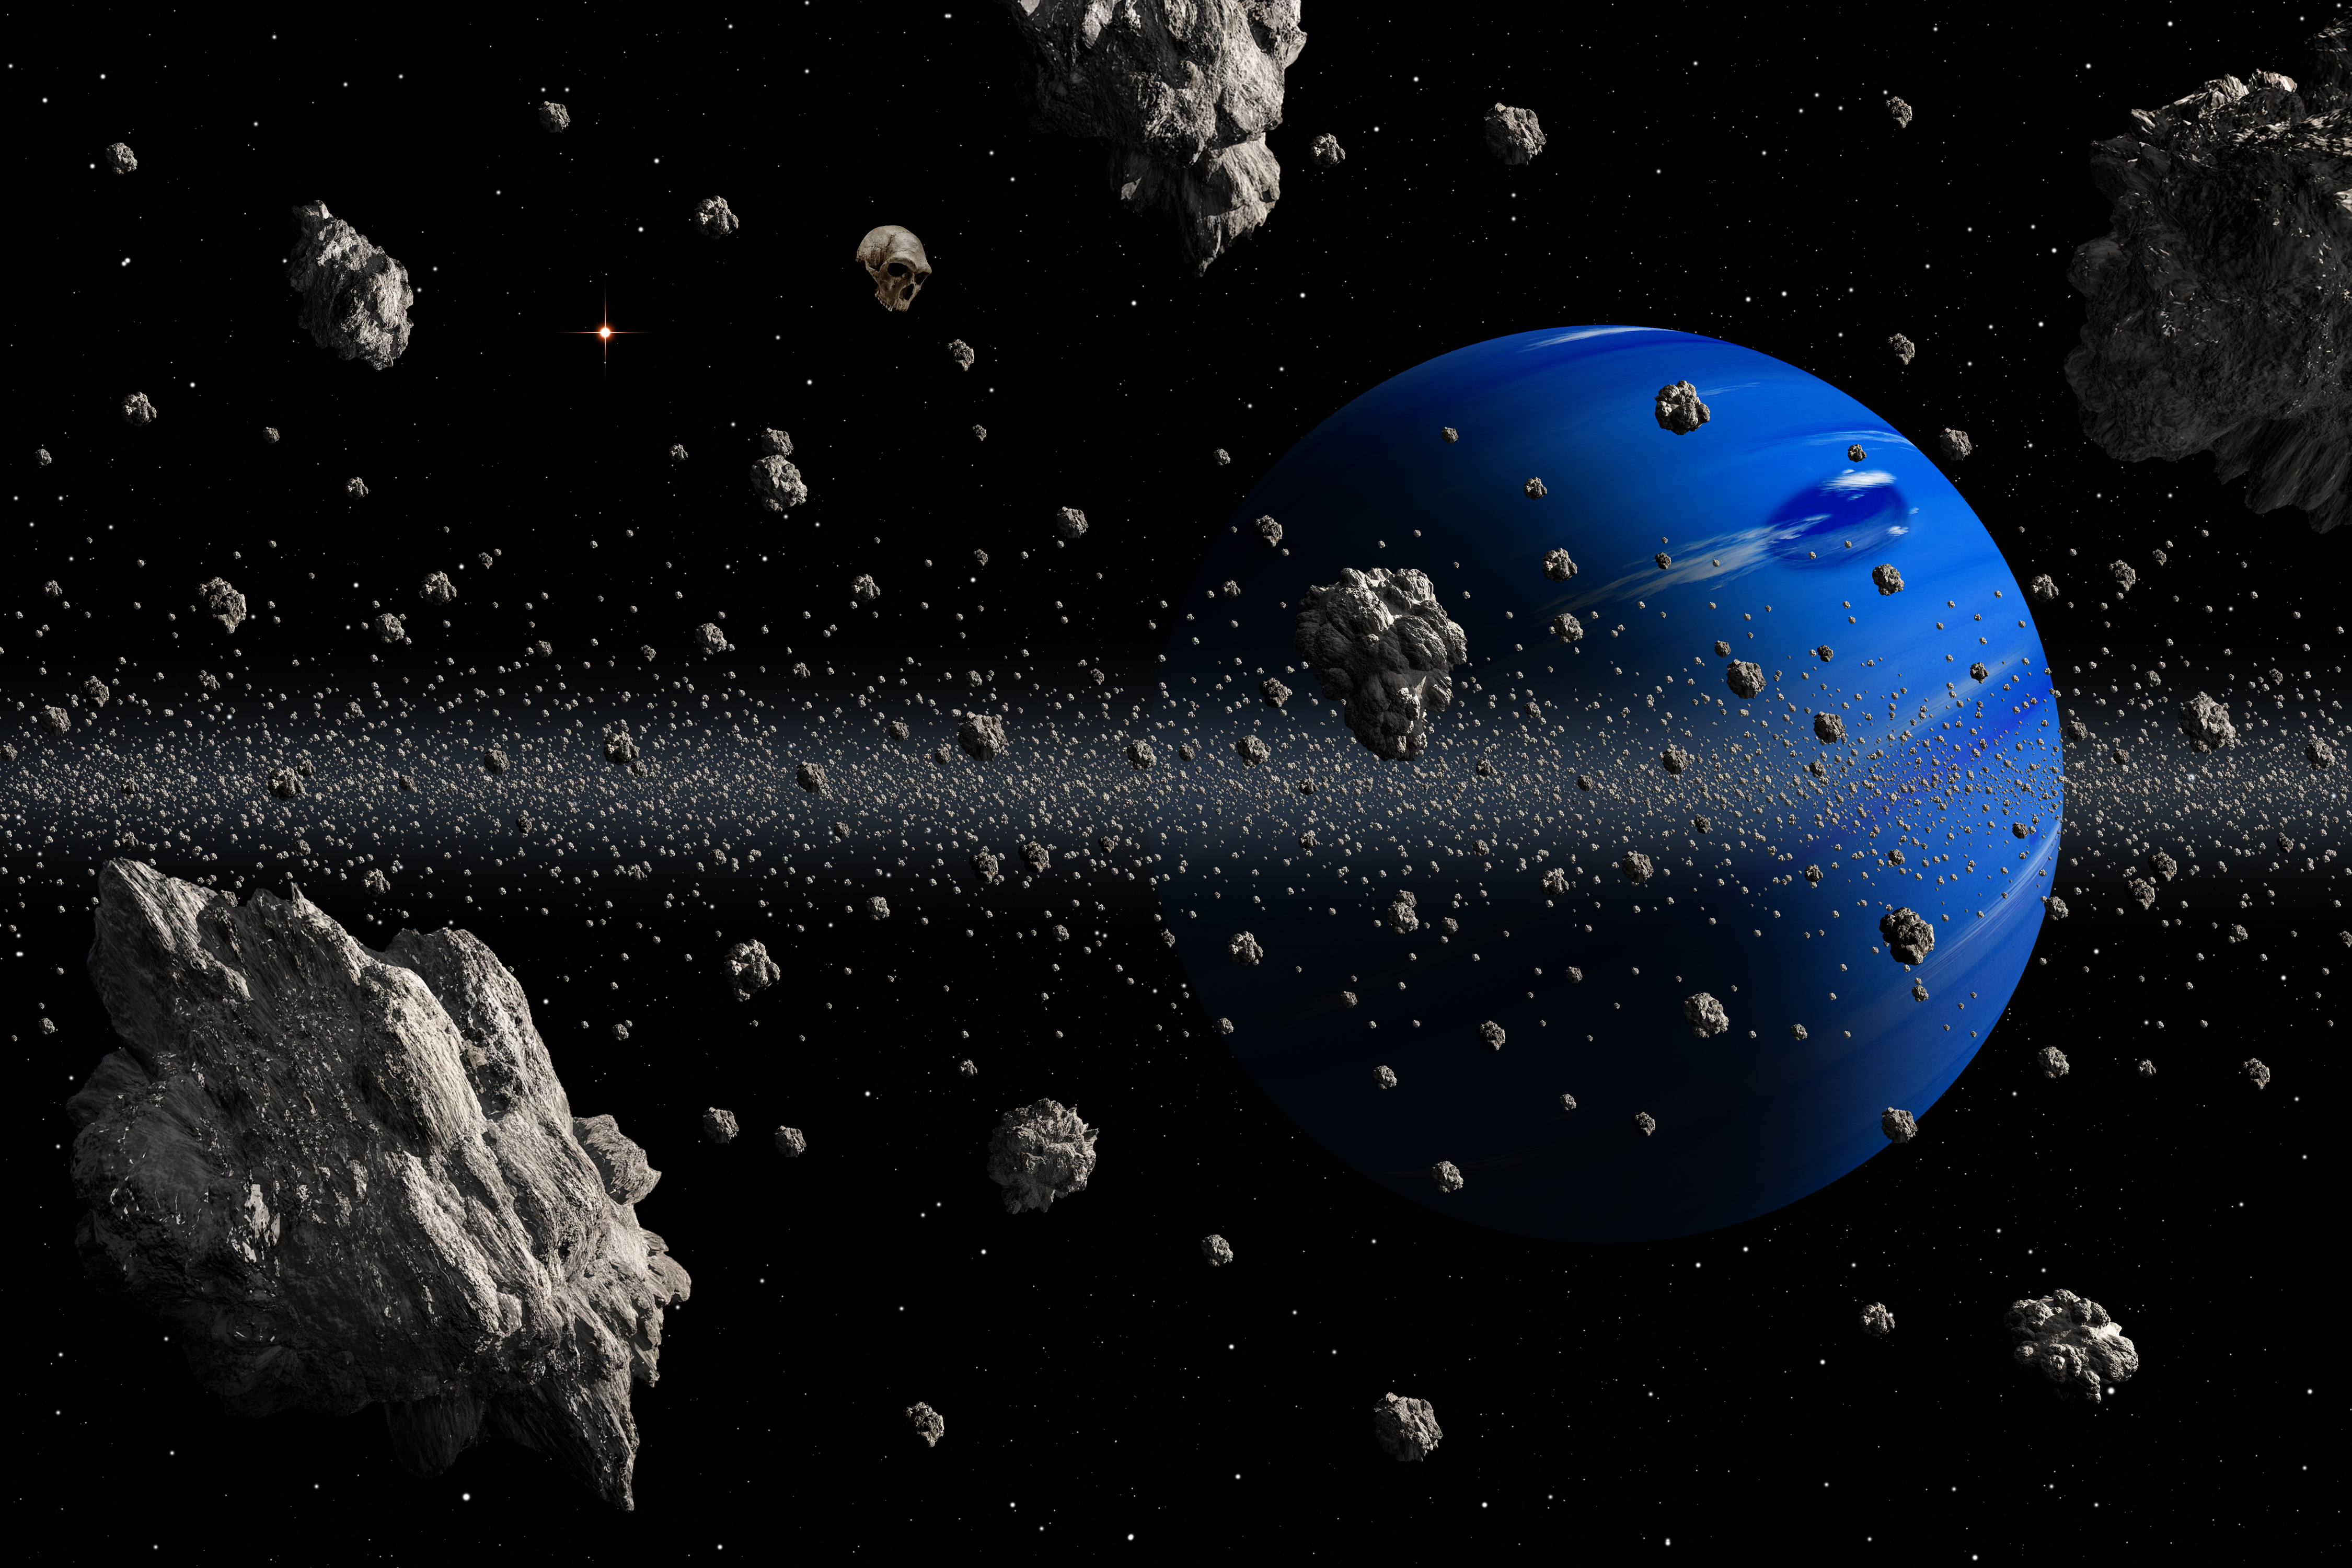 56133 free download Blue wallpapers for phone, Planet, Asteroids, Universe, Asteroid Belt Blue images and screensavers for mobile